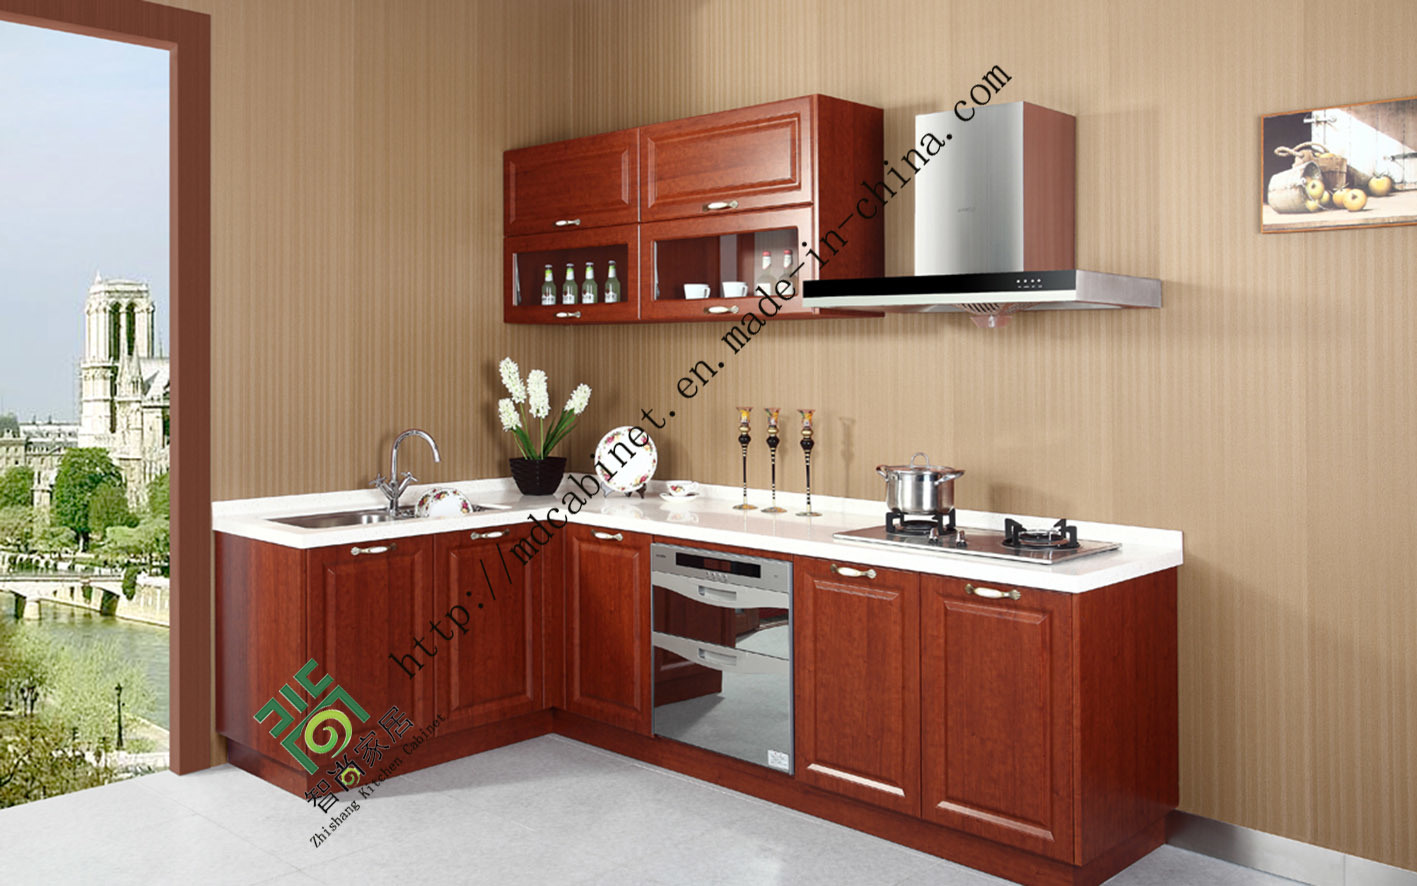 Wonderful image of  Wood Kitchen Cabinet (zs 320) Photos & Pictures Made in china.com with #733020 color and 1417x886 pixels